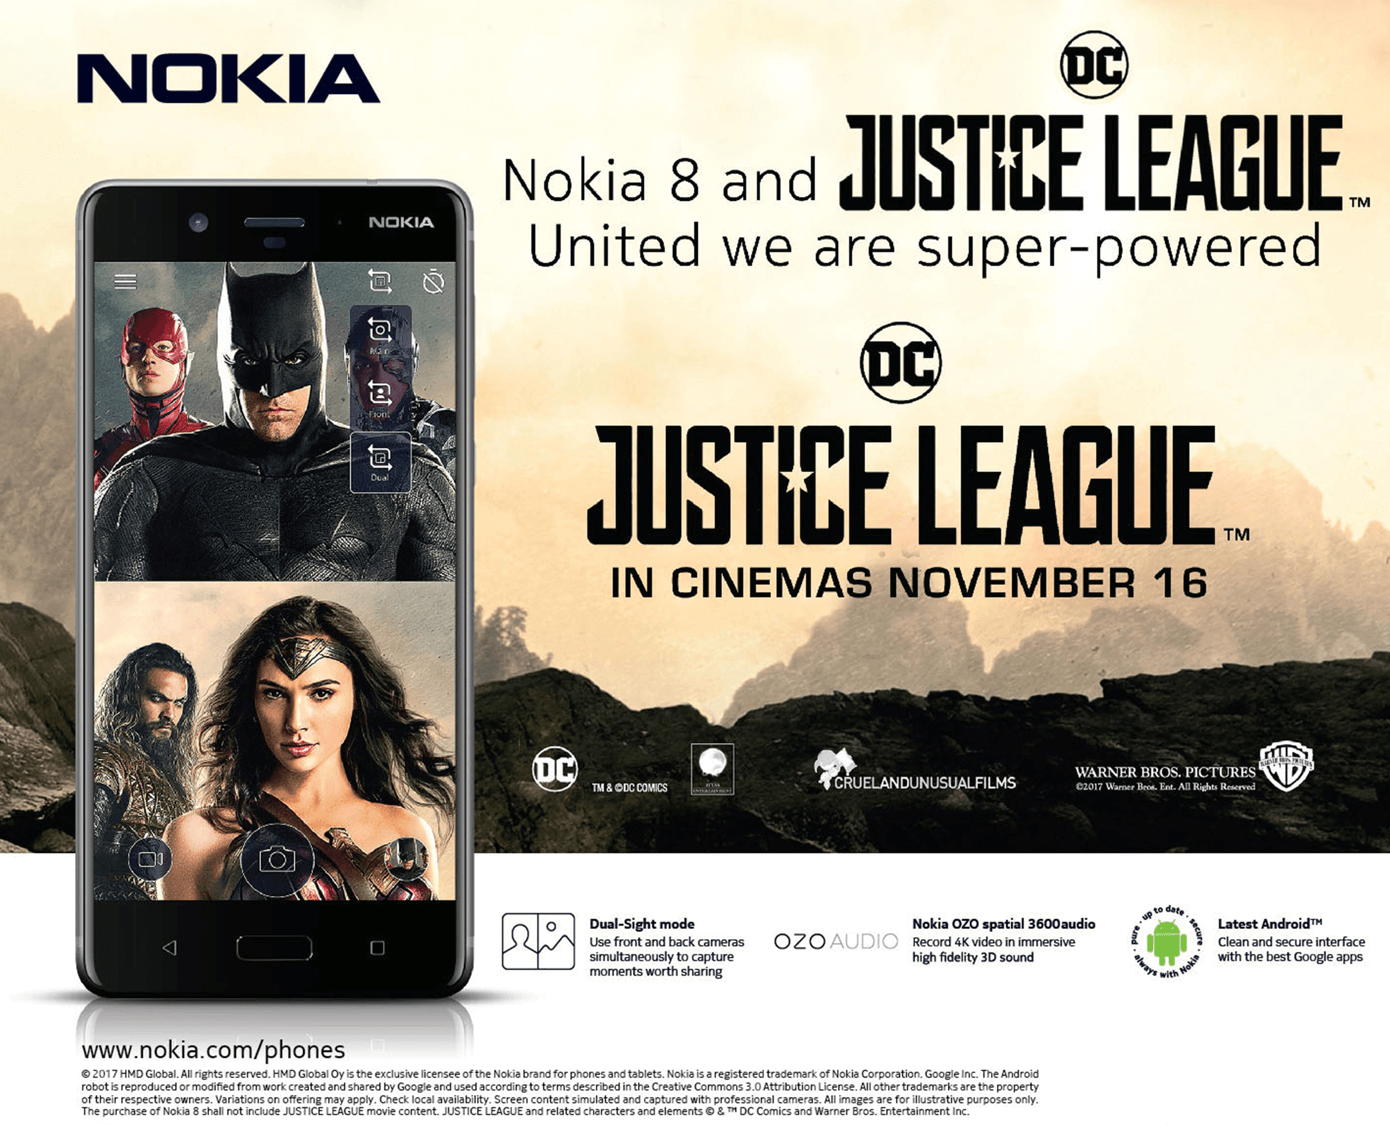 Justice League   Nokia mobile 1 - Get FREE Tickets to Watch Justice League When You Buy a Nokia Smartphone from MemoXpress!